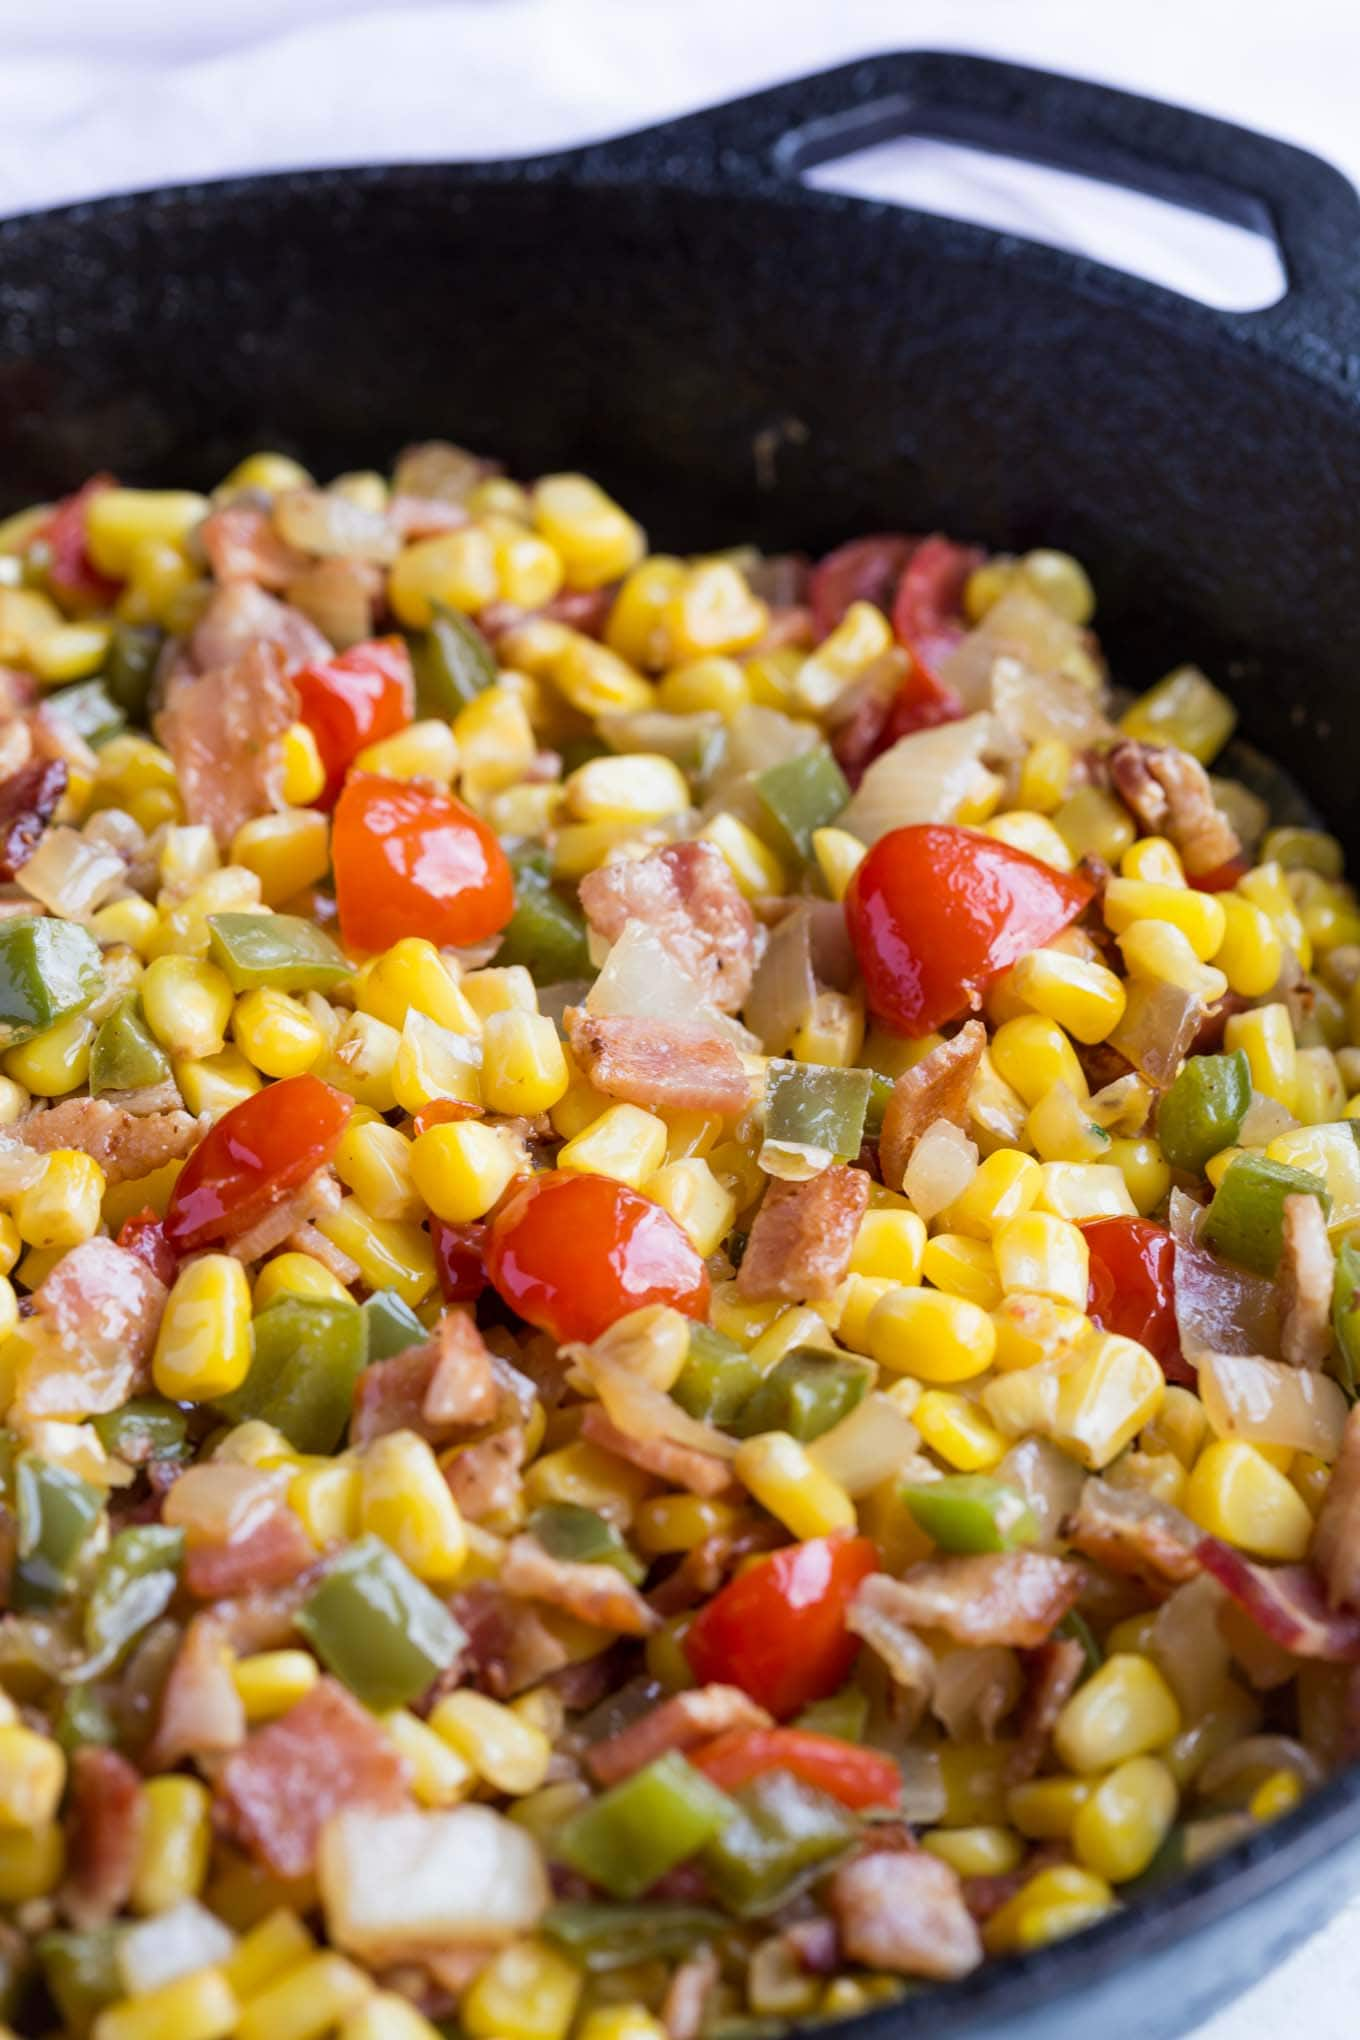 Corn Maque Choux is a classic cajun and southern side dish that's simple to make and packed with flavor, it's gluten free too!